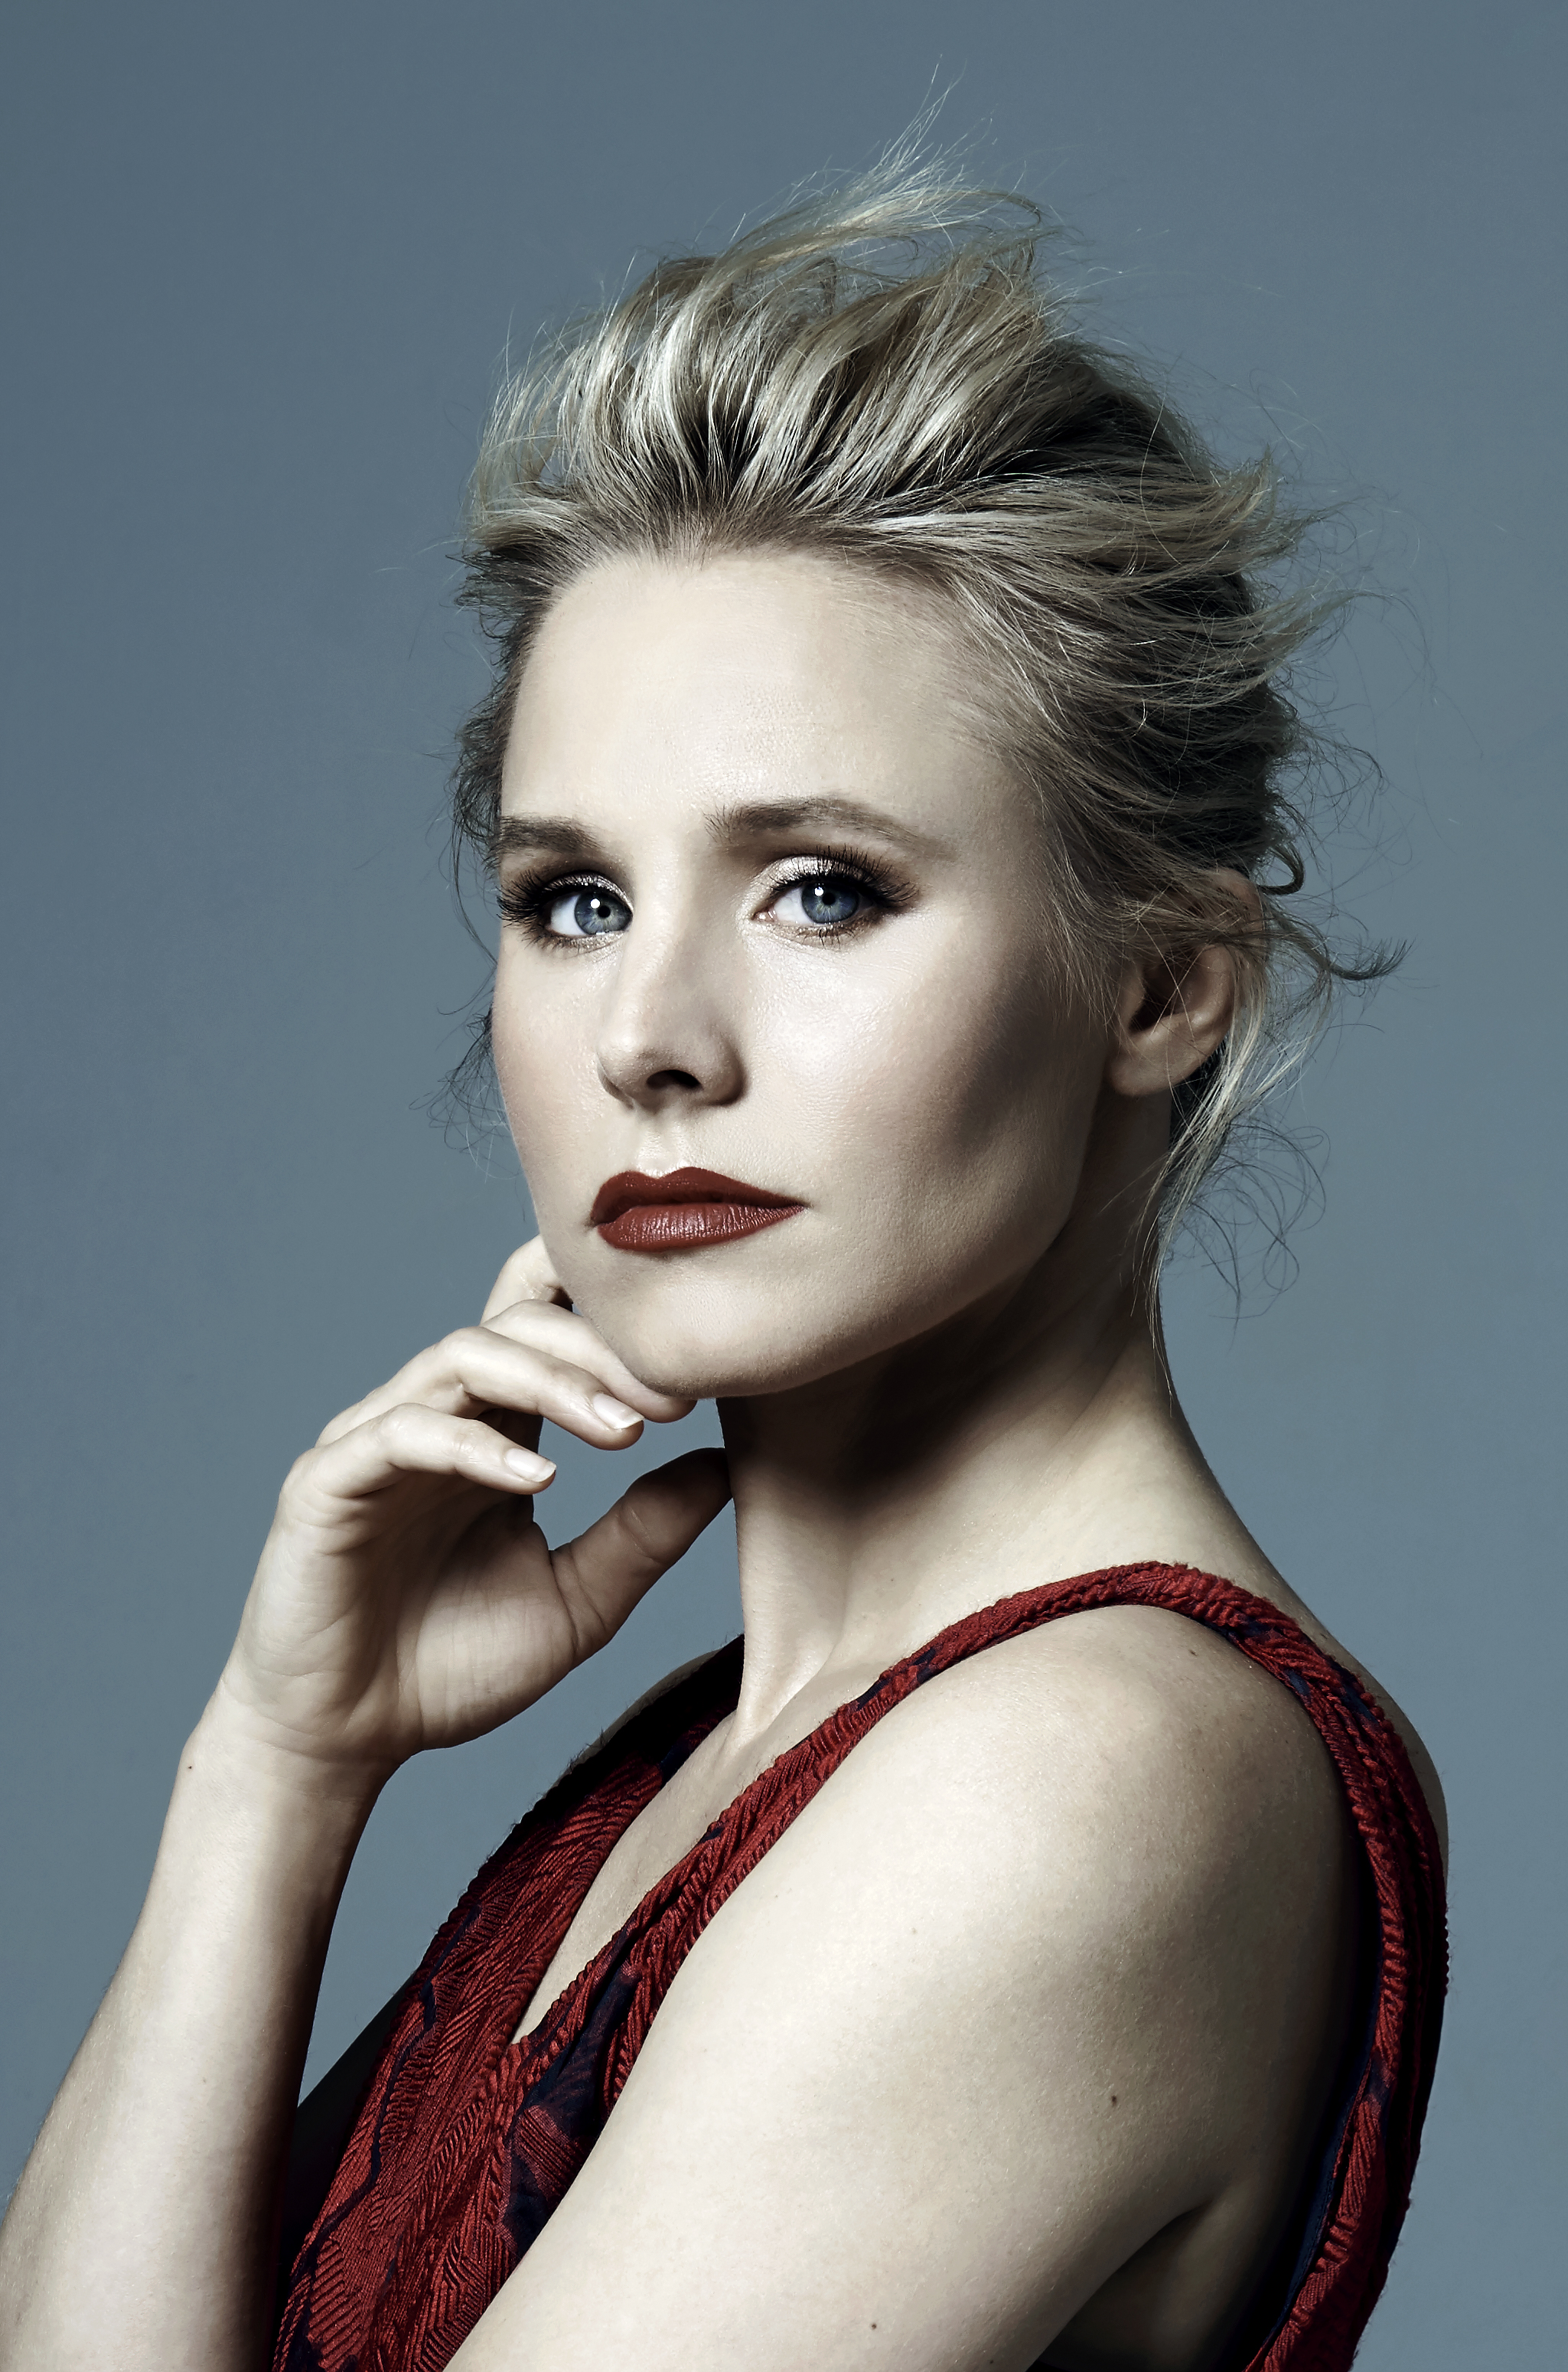 "Kristen Bell - Kristen Bell currently stars in the NBC series ""The Good Place,"" opposite Ted Danson, now airing season three. She is also set to reprise her role as the titular character in the revival of popular series ""Veronica Mars,"" slated for release in 2019 on Hulu. Recently, Bell narrated the IMAX documentary PANDAS, lent her voice to the animated film ""Teen Titans Go! to the Movies,"" and starred opposite Kelsey Grammer in the Netflix comedy ""Like Father."" Last year, Bell executive produced and appeared in the ABC special ""Encore,"" about former high-school classmates who get together for an encore performance of their old musical theater productions. She also reprised her role as 'Anna' in ""Olaf's Frozen Adventure,"" a featurette based on the blockbuster Disney animated feature ""Frozen,"" that was released alongside Pixar's ""Coco."" She is working on the sequel to ""Frozen,"" scheduled to hit theaters in fall 2019. ""Frozen"" has grossed over $1.2 billion worldwide, making it the highest grossing animated film of all time. Bell also starred in ""A Bad Moms Christmas,"" alongside Mila Kunis and Kathryn Hahn. The film is a sequel to 2016's ""Bad Moms,"" the first STX film to gross over $100m domestically.In 2016, Bell was seen as 'Jeannie Van Der Hooven' in the Showtime series ""House of Lies"" opposite Don Cheadle, which wrapped its fifth and final season. In 2014, Bell reprised her beloved title role in Warner Brothers' film ""Veronica Mars,"